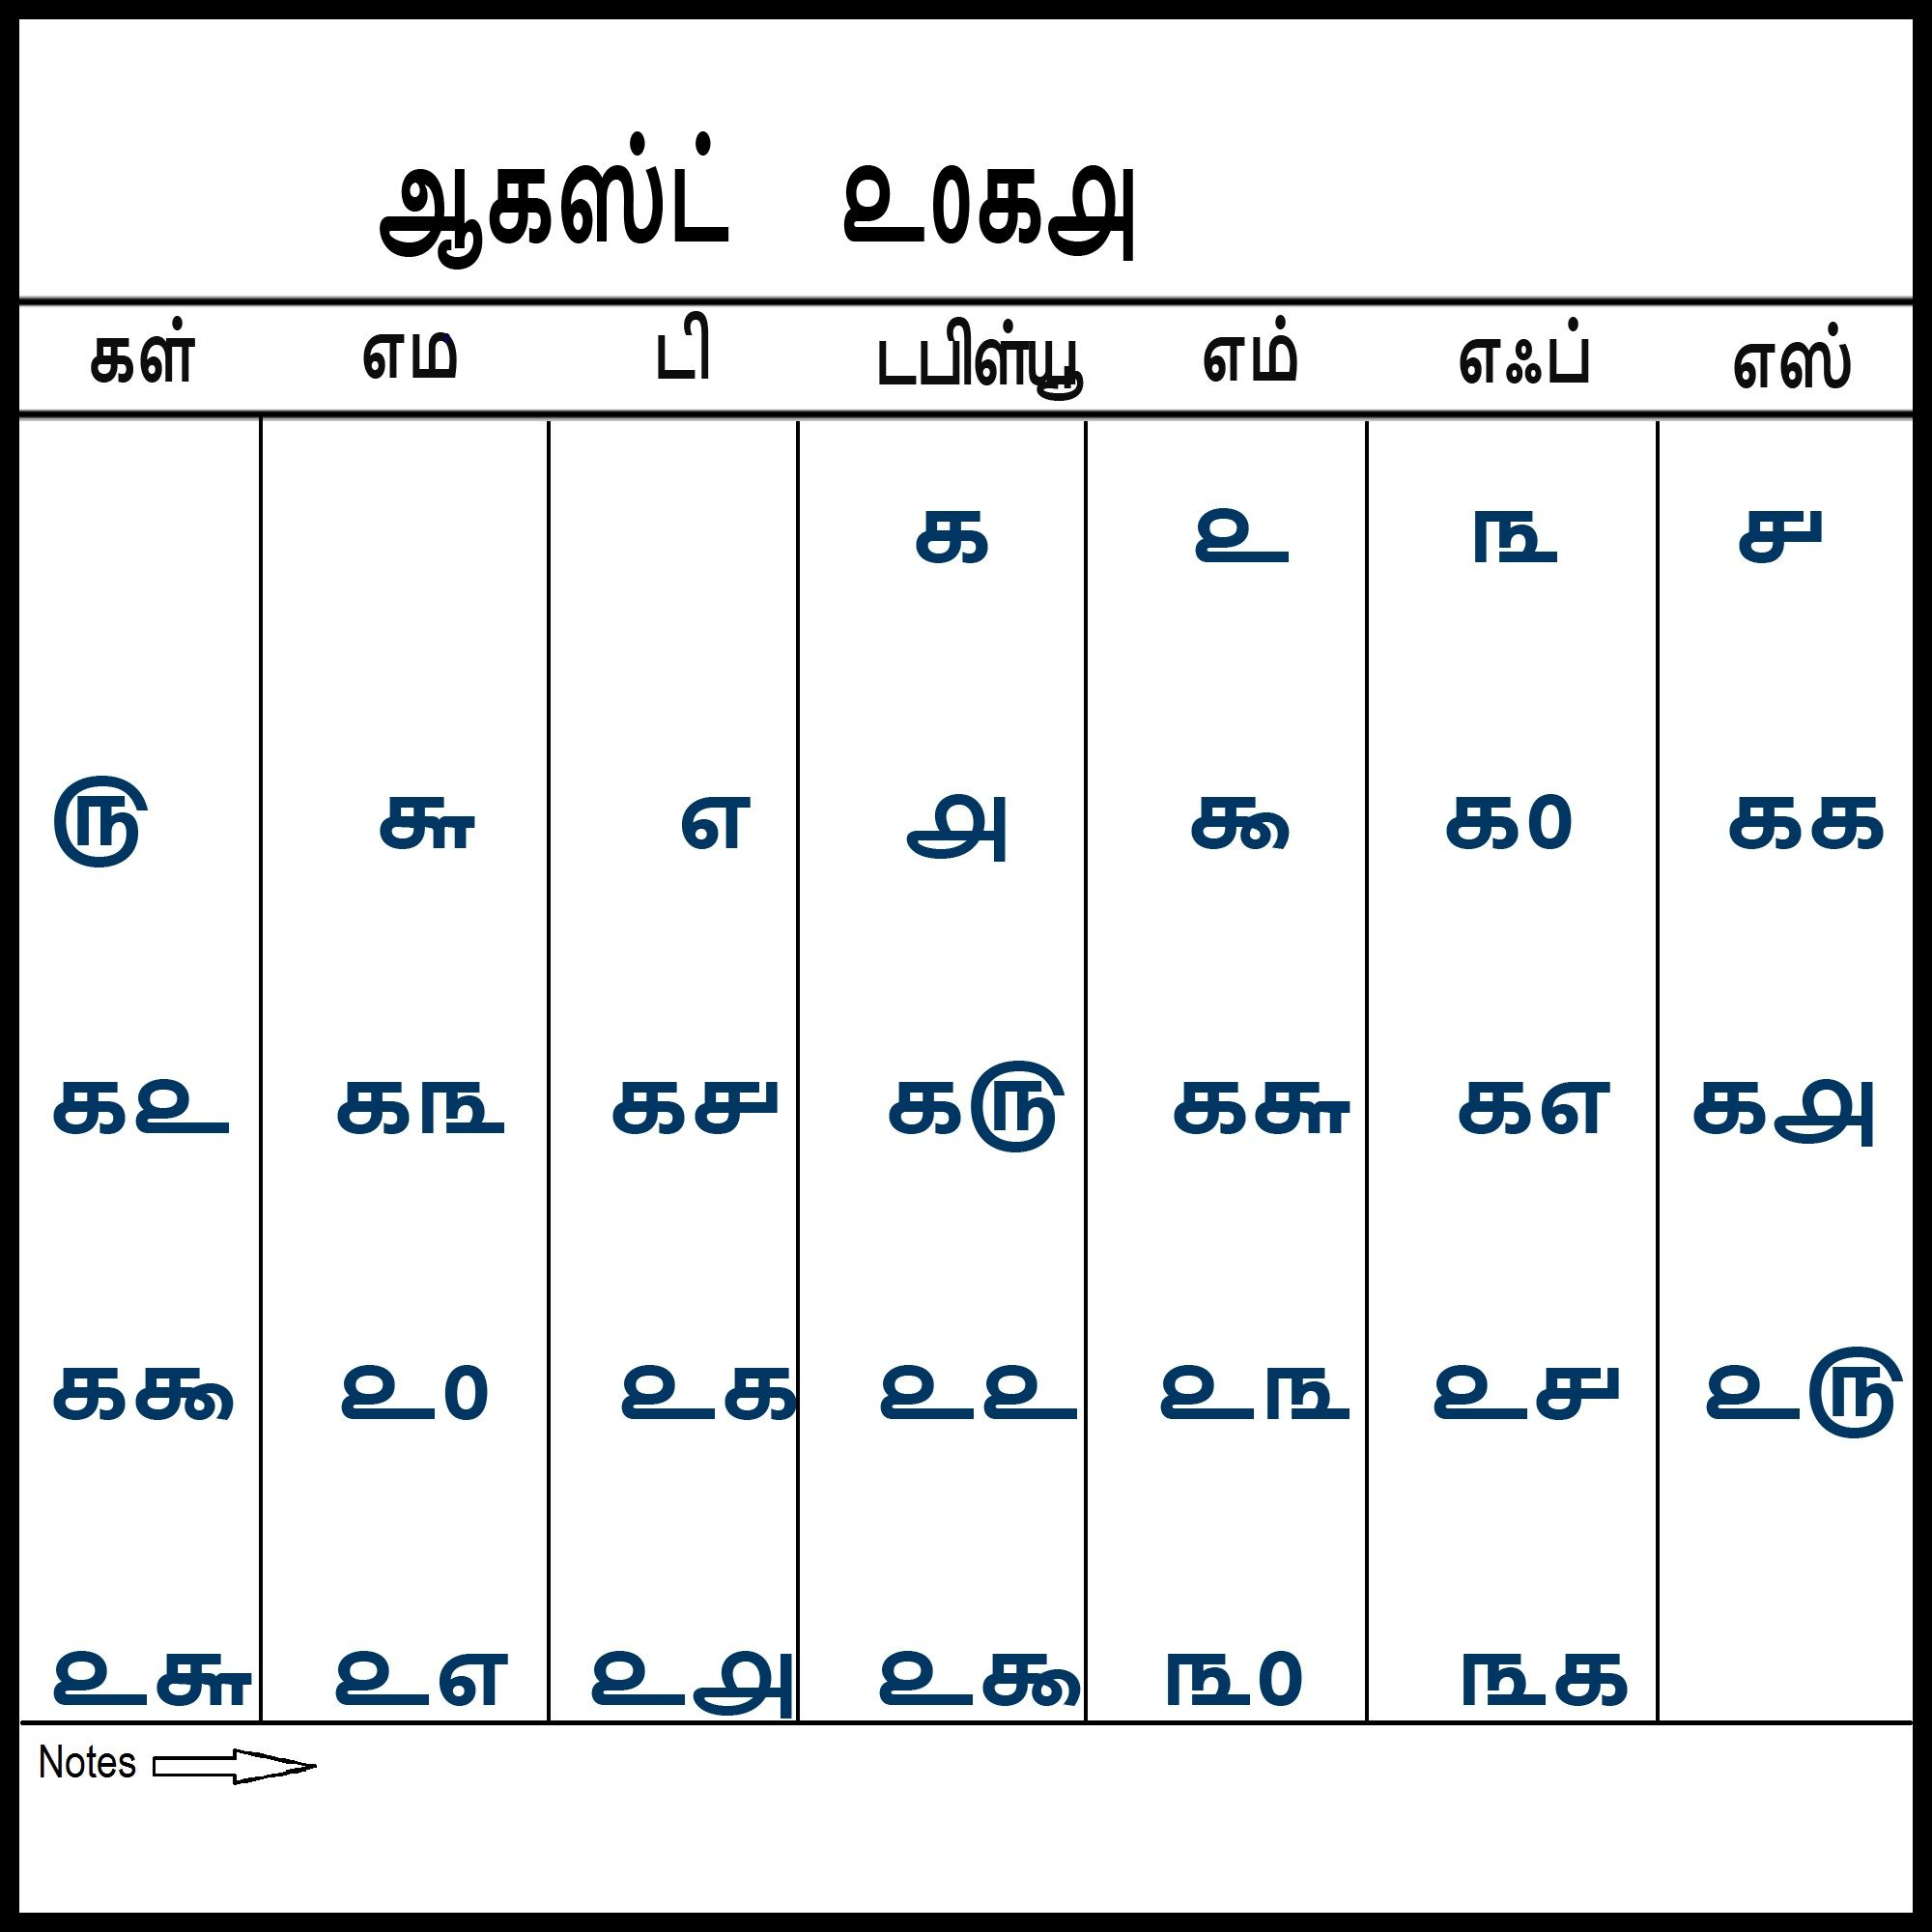 august 2018 tamil calendar with notes calendar australia 2018 calendar excel printable blank calendar